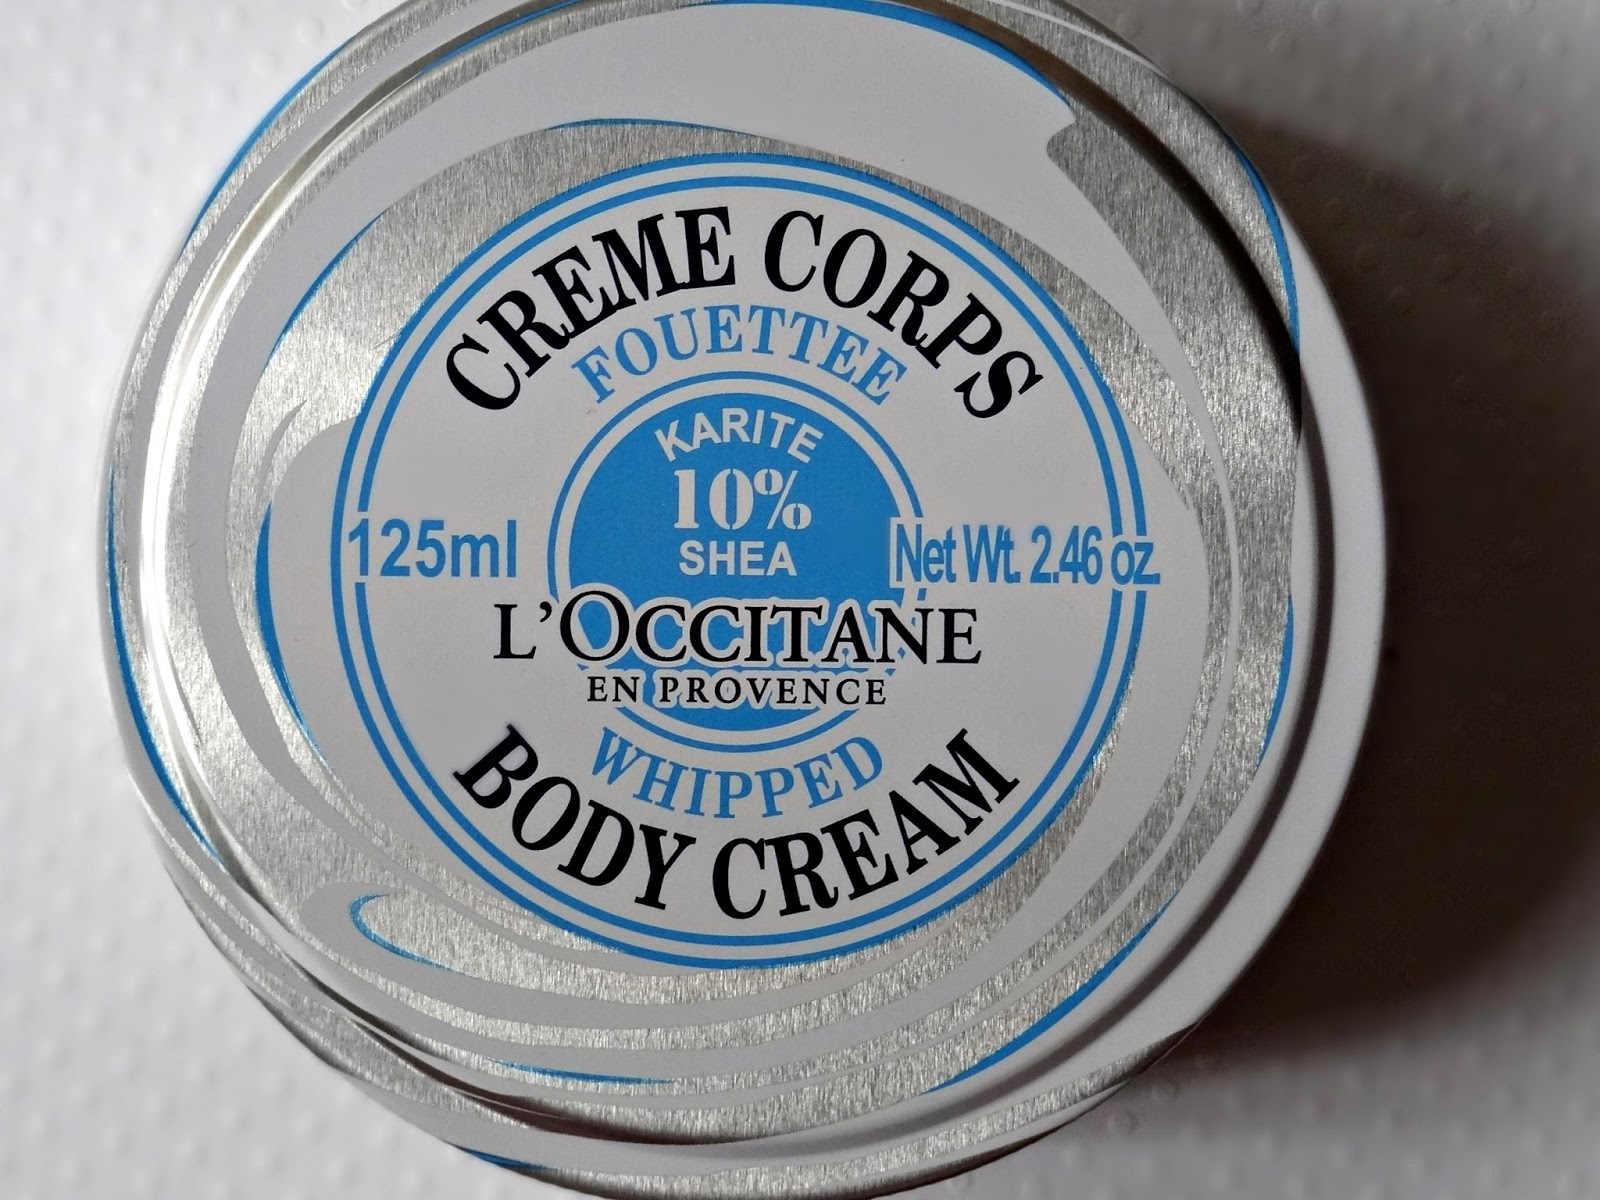 L'Occitane Shea Whipped Body Cream